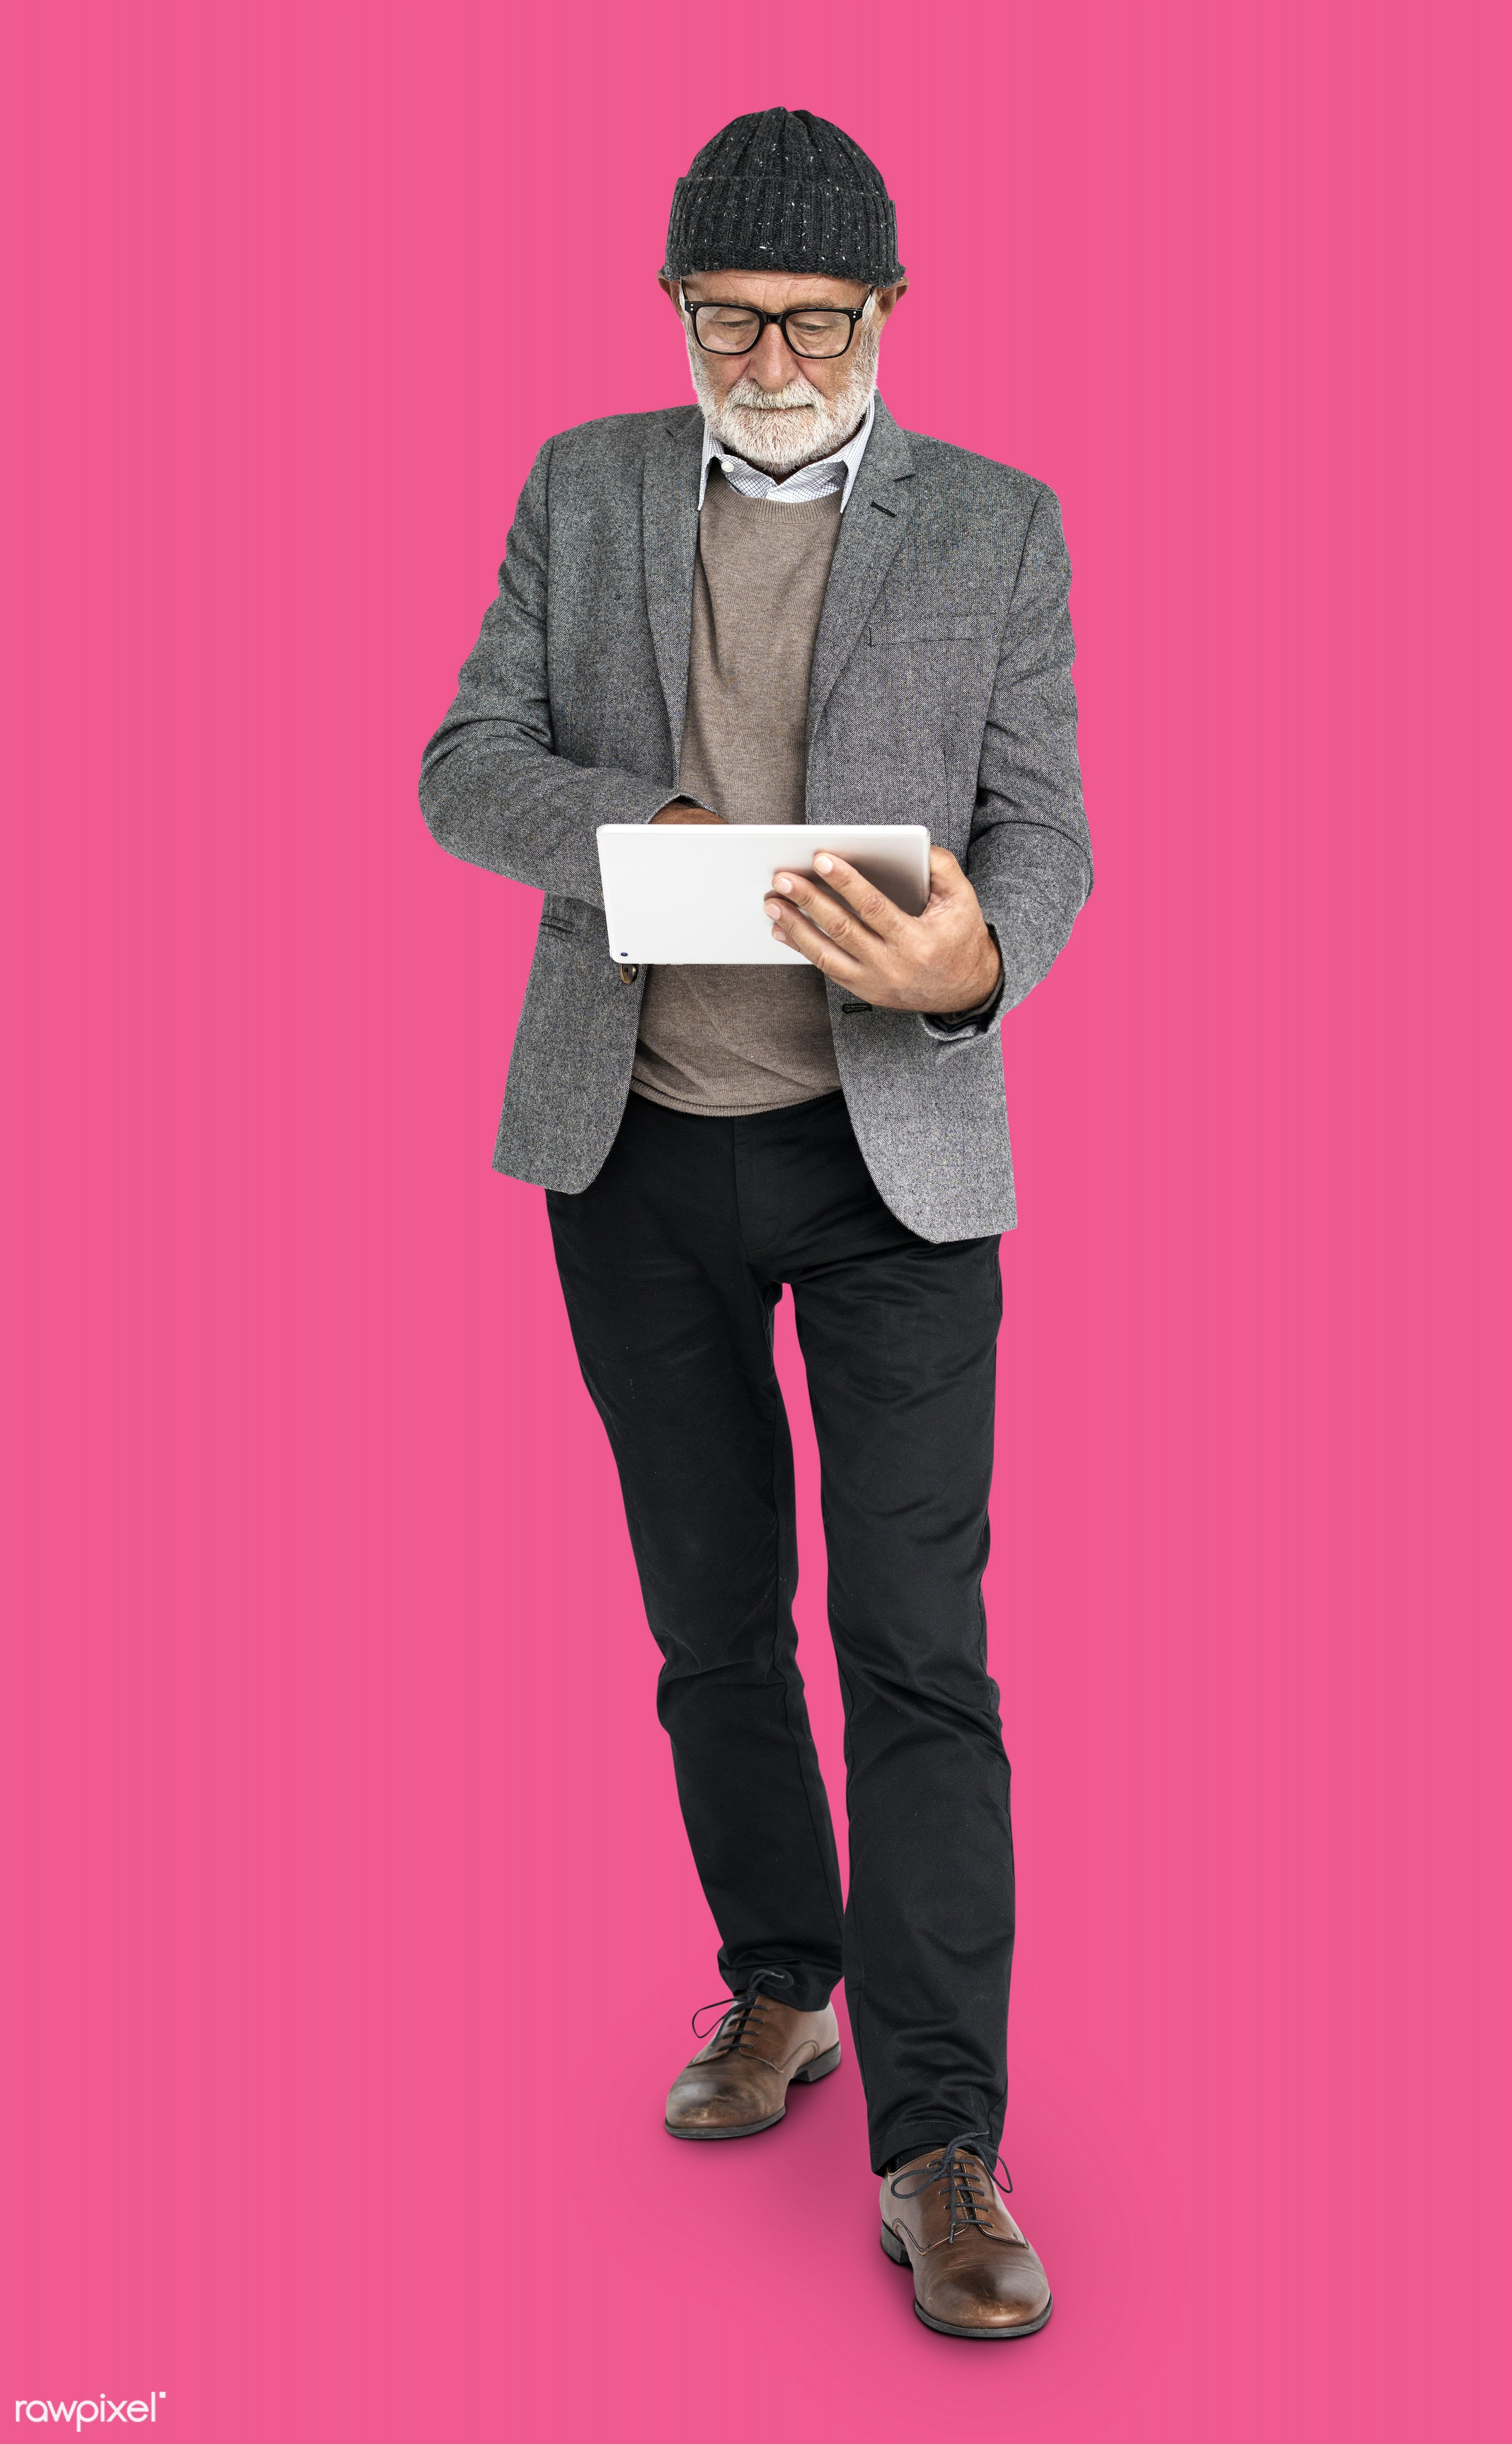 expression, studio, person, technology, glasses, beanie, people, online, digital tablet, casual, pink, man, isolated,...